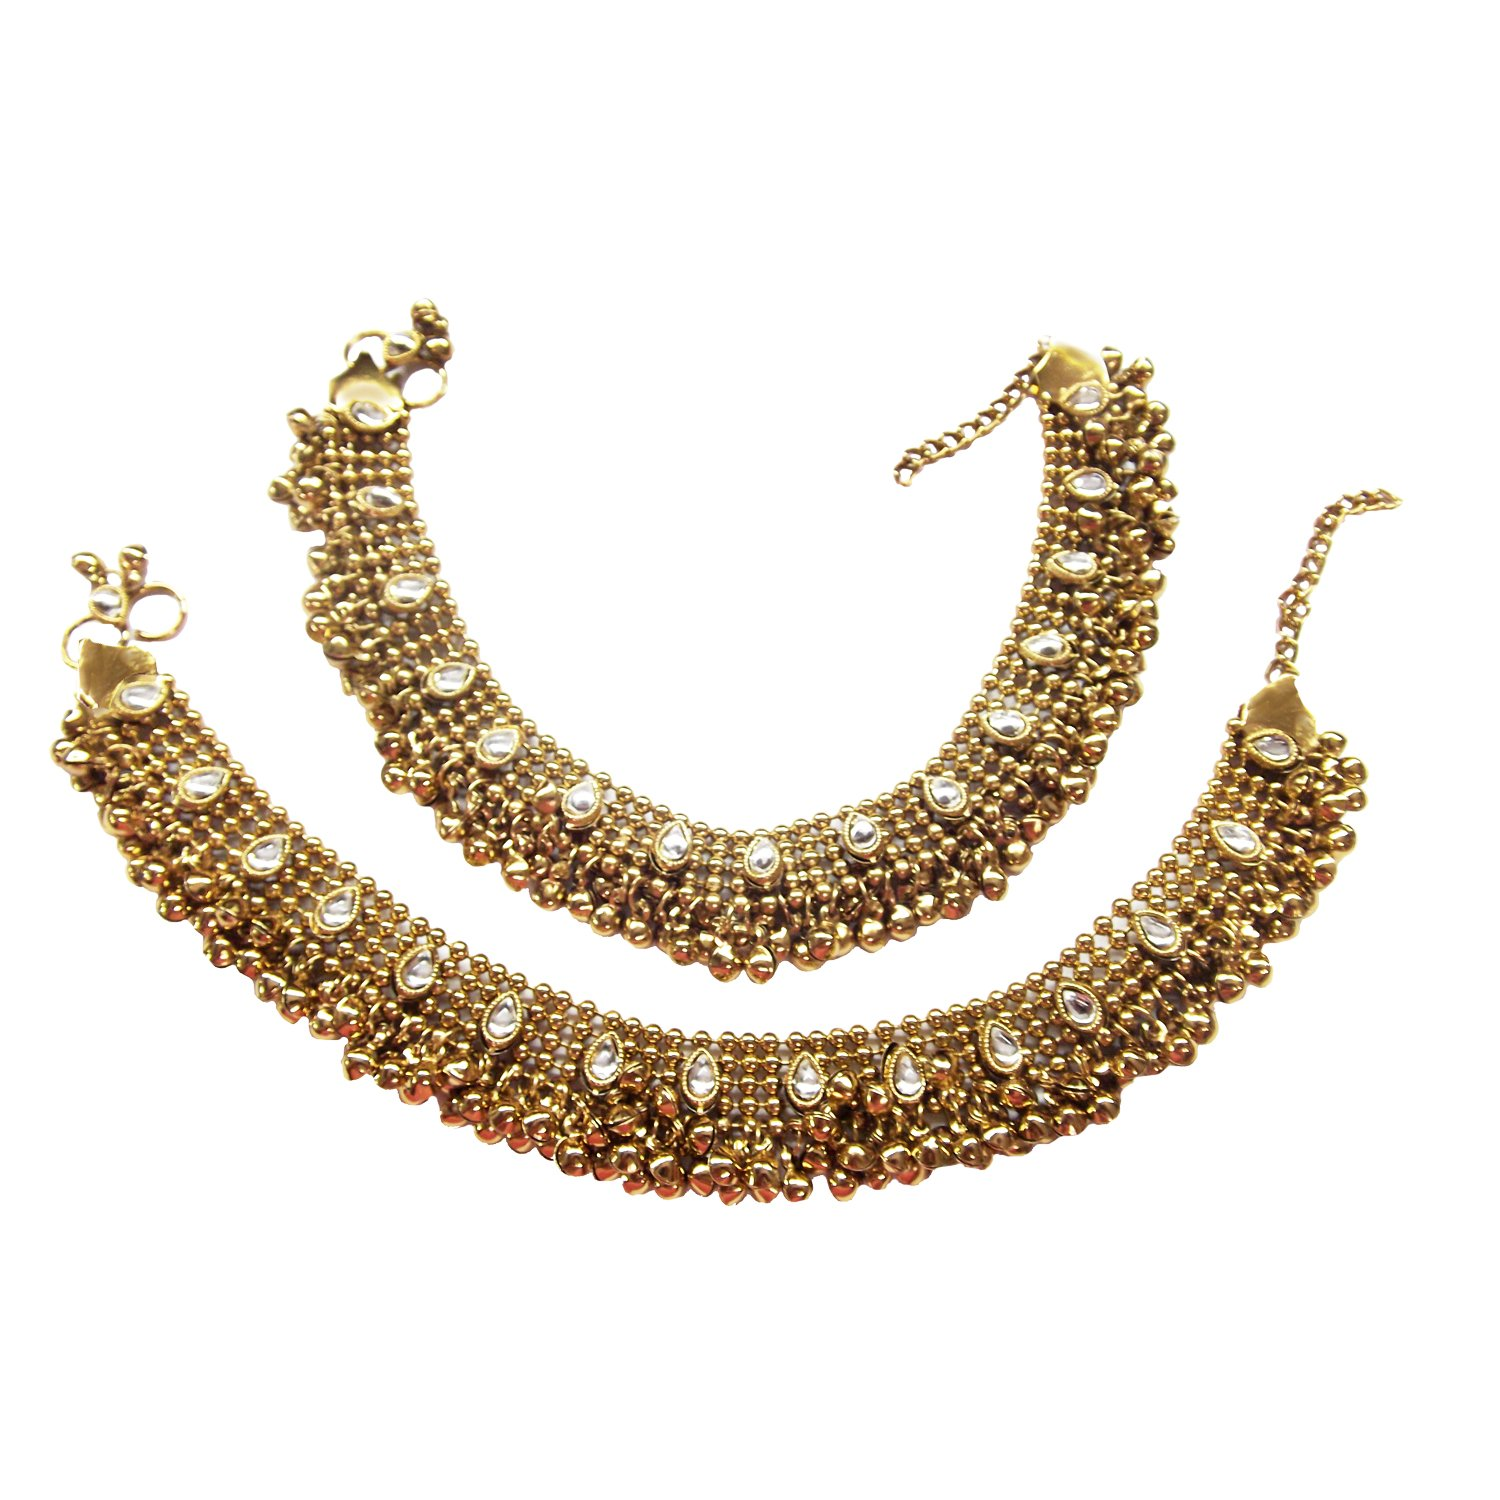 Aria Antique Style Diwali Festive Cz Plated Bridal Anklet Gold